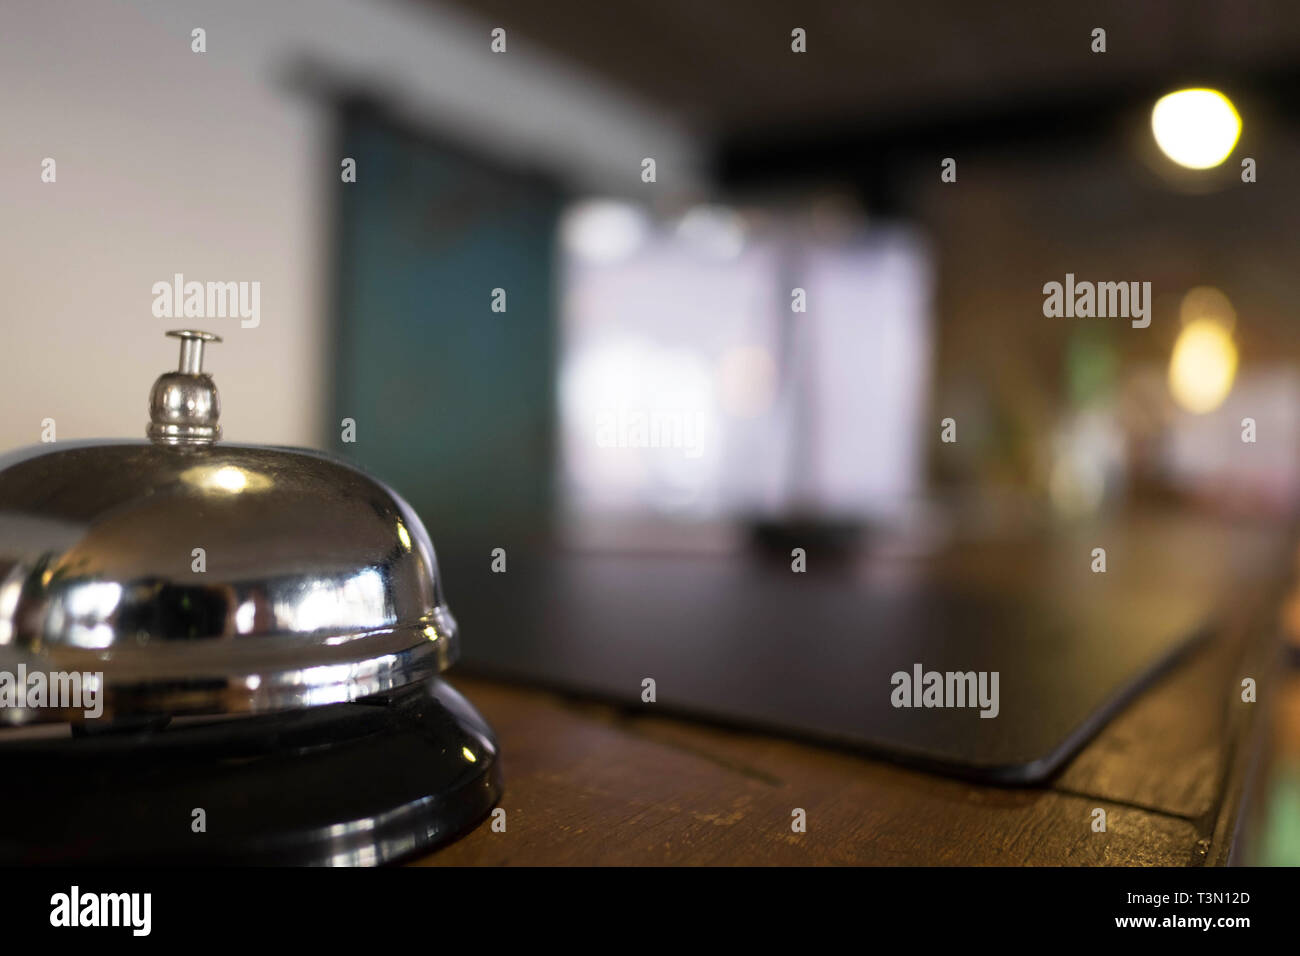 Service bell locating at reception. Silver call bell on table, receptionists on background. - Stock Image